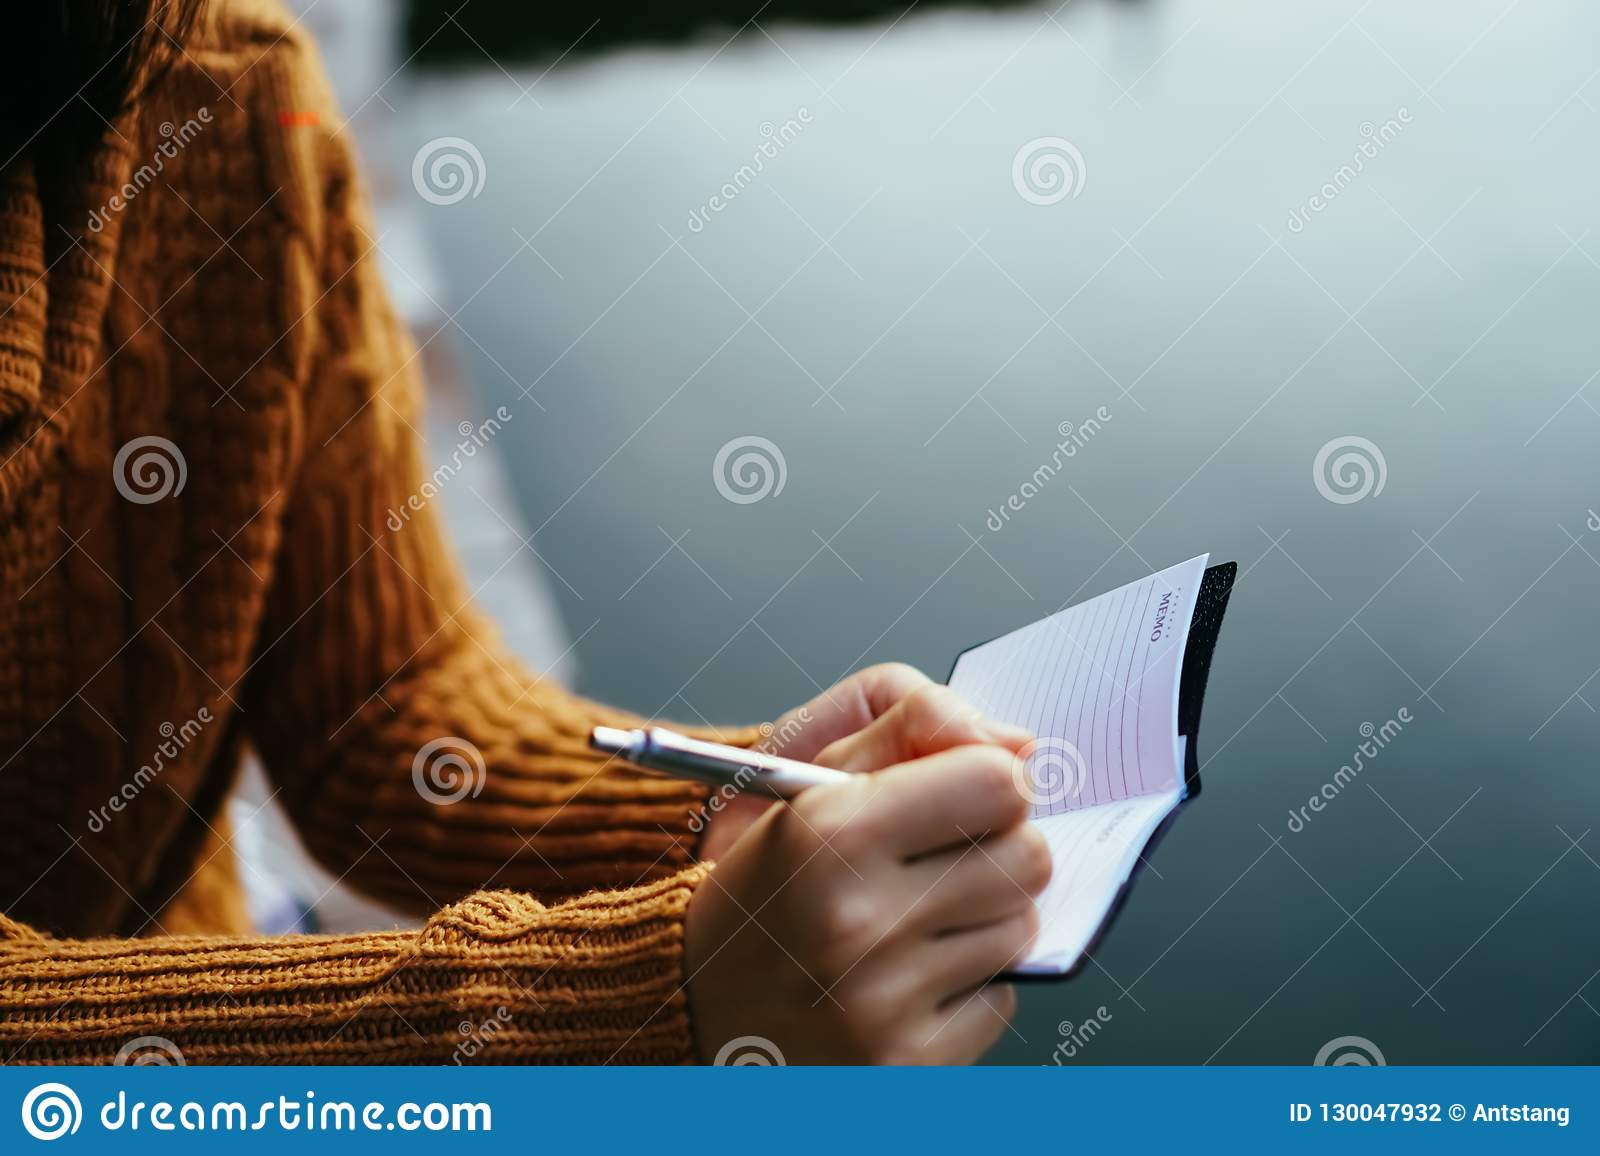 Woman hand writing down in small white memo notebook.